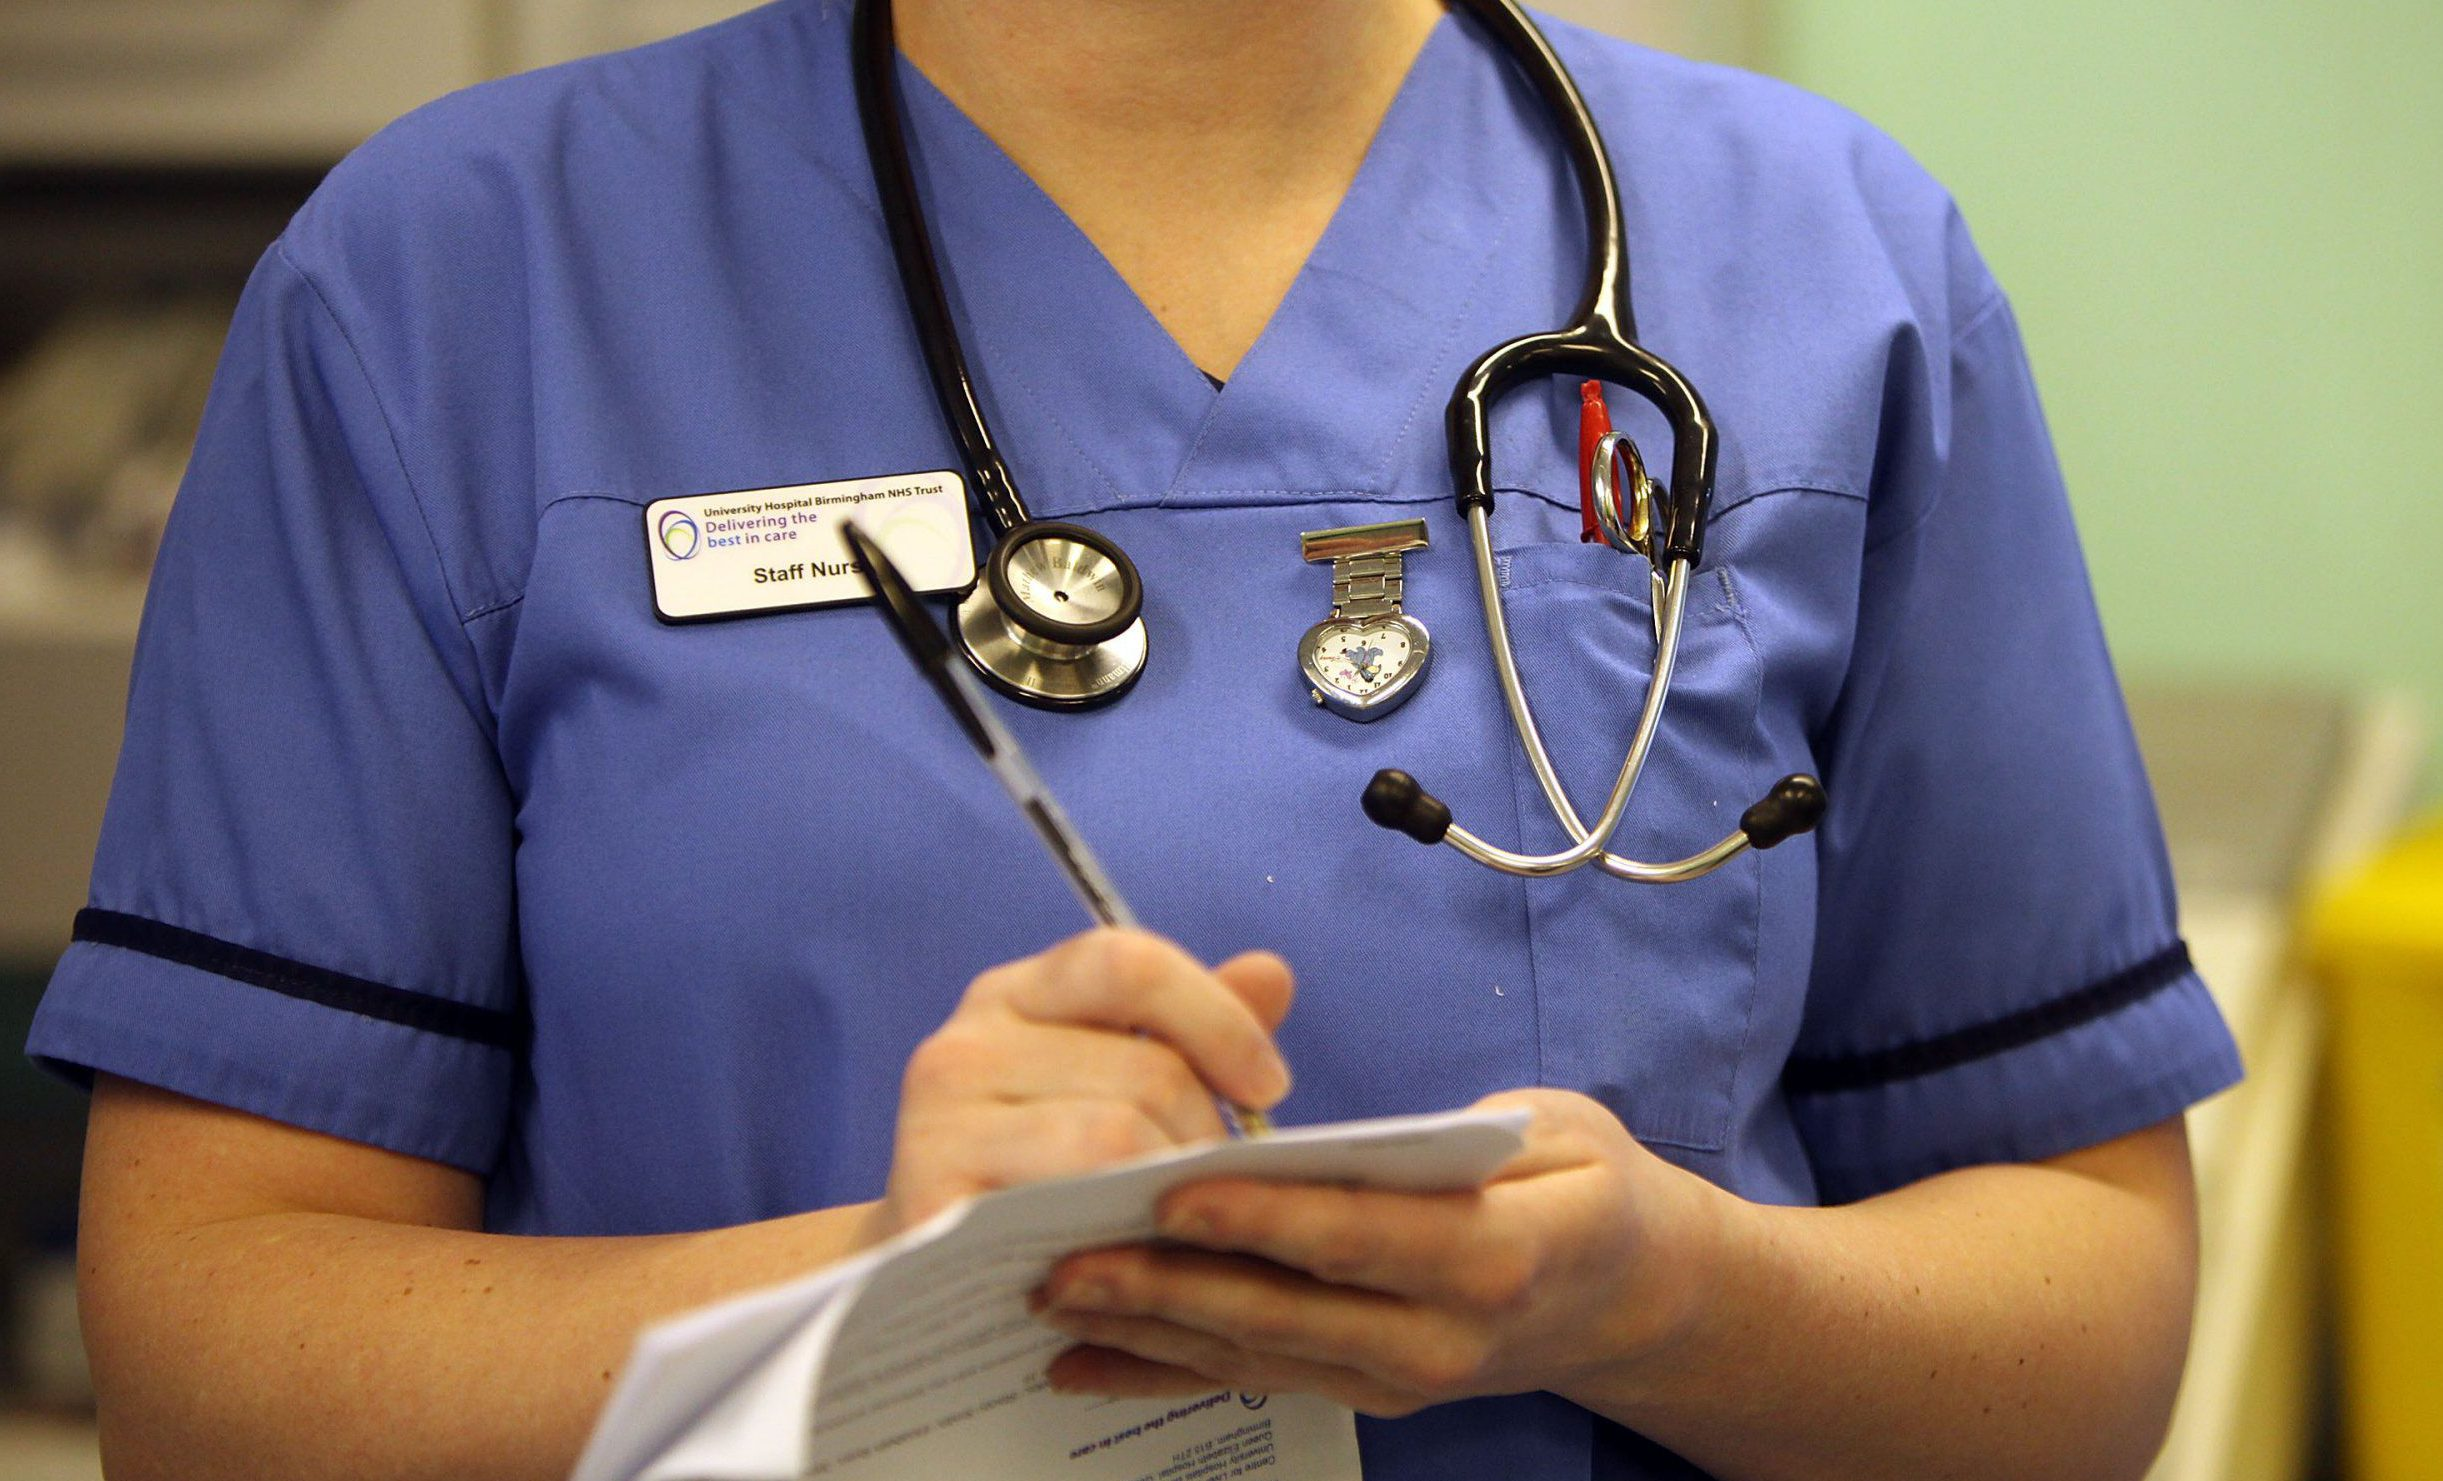 Keeping the NHS going could cost you £2,000 in extra taxes